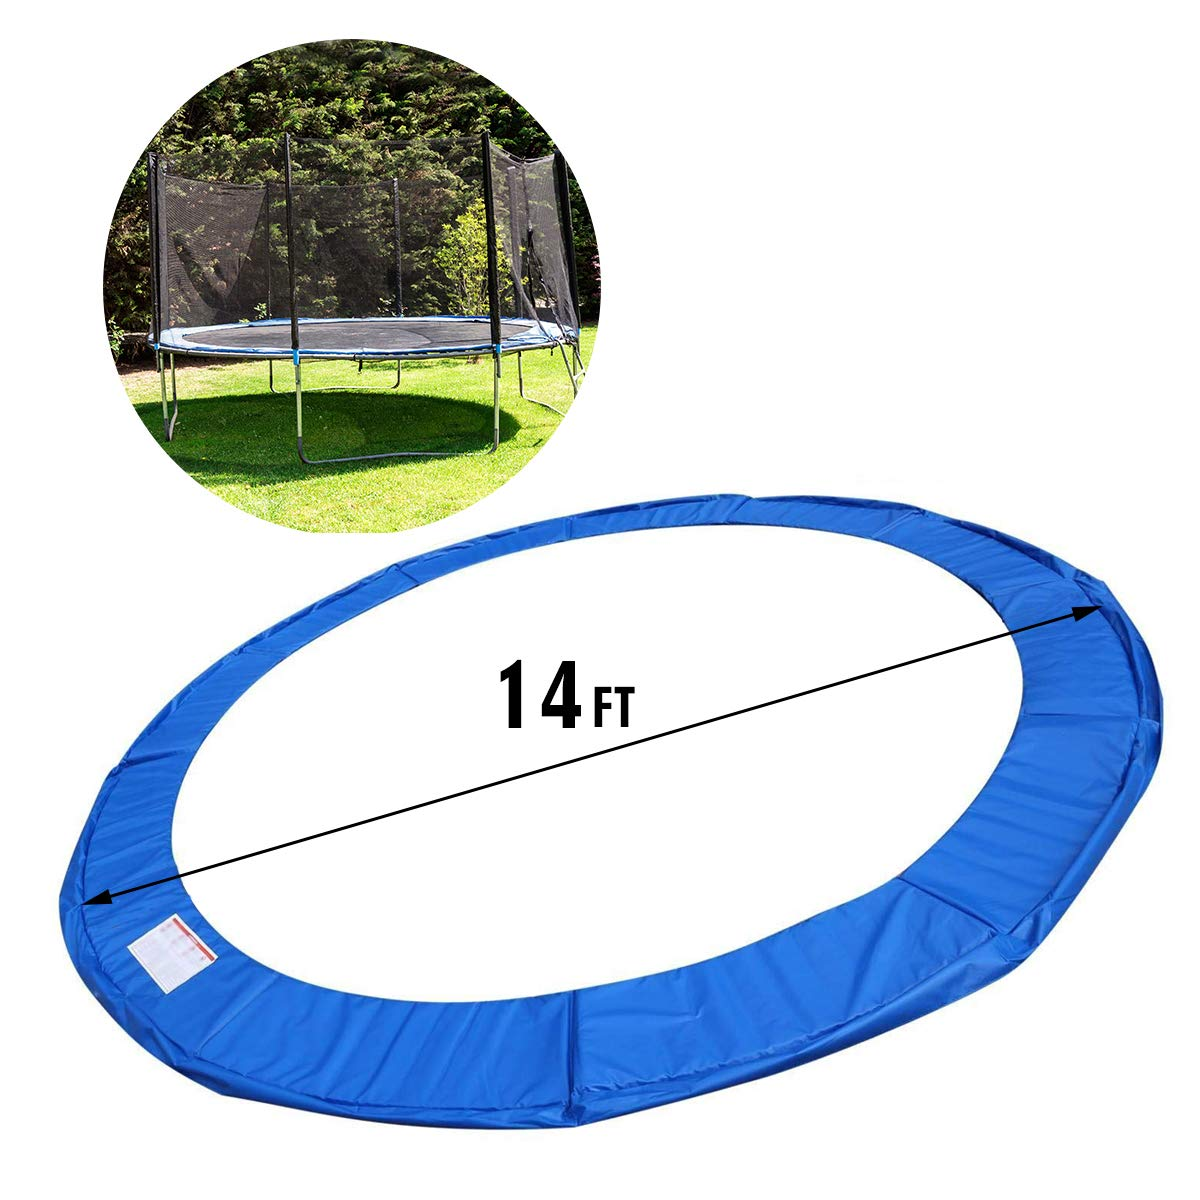 Giantex Trampoline Pad, Exercise Fitness Gymnastics Trampoline,Trampoline Pad Replacement Bounce Frame, Edge Cover Springs Protection Pad, Rebounder Trampoline (Blue, 14 ft) by Giantex (Image #6)